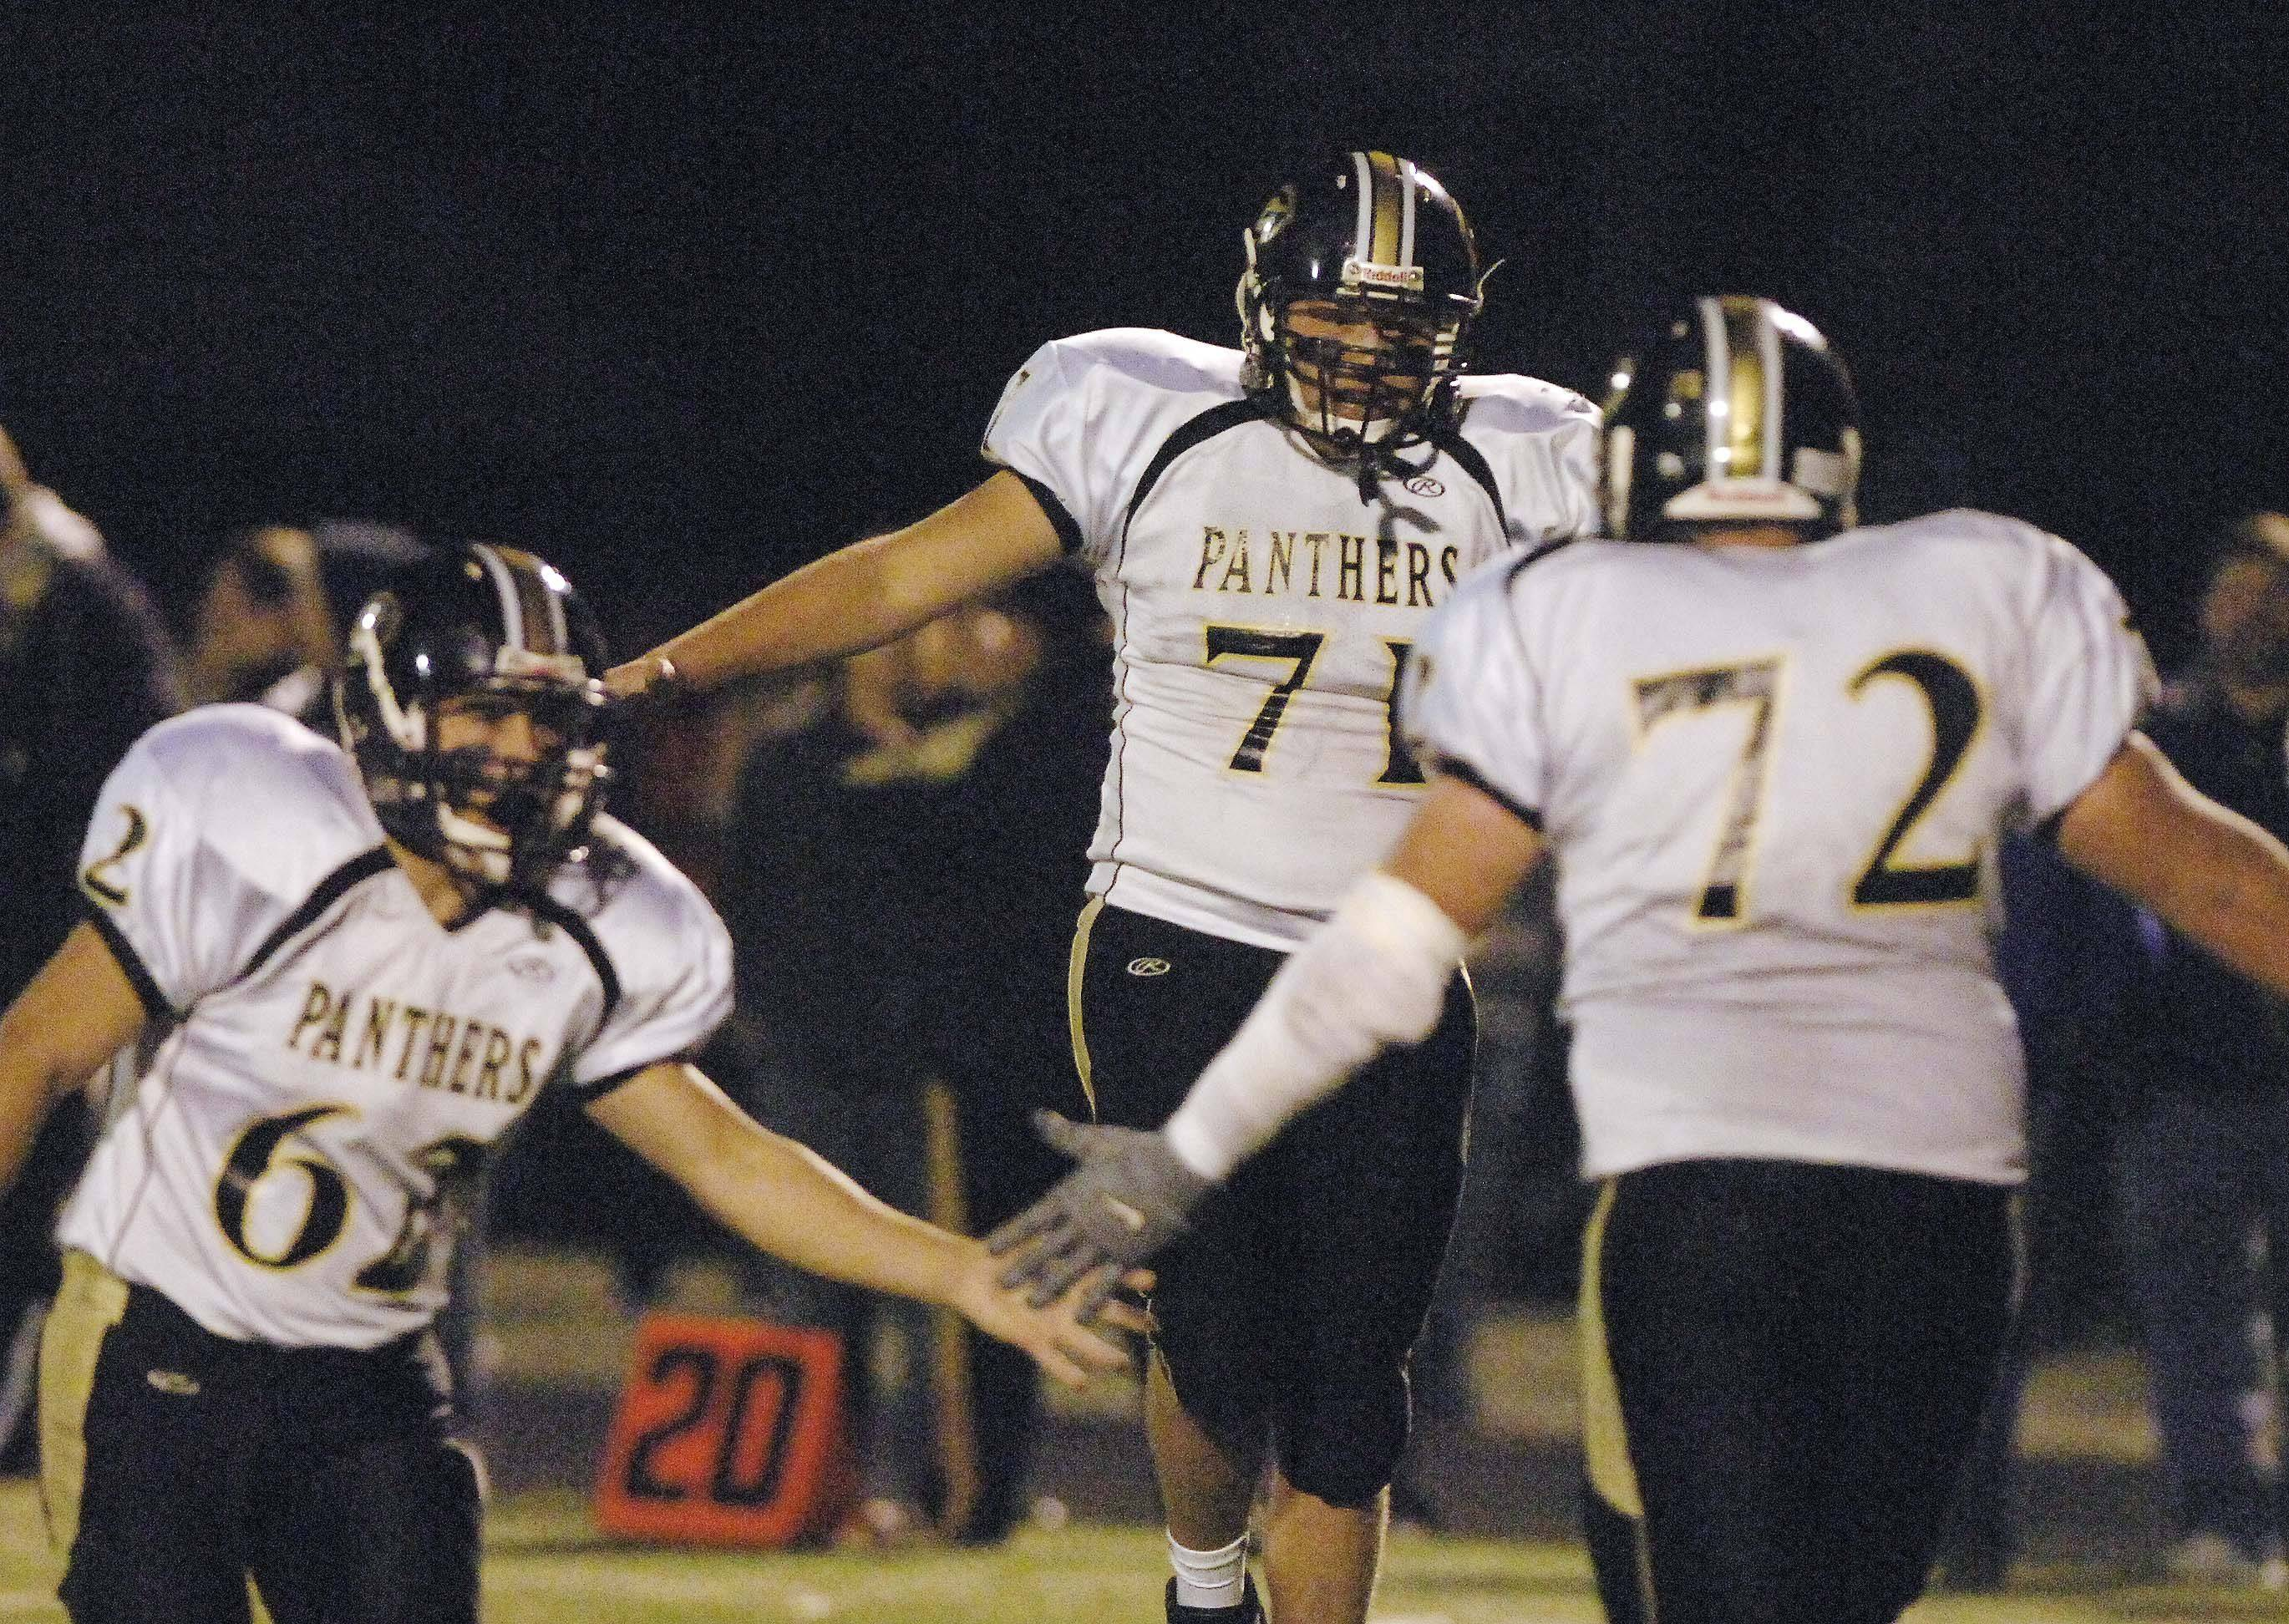 WEEK 8- Jeremy Kriese,left, Alex Wynn, and Cody Burandt of Glenbard North celebrate a touchdown.